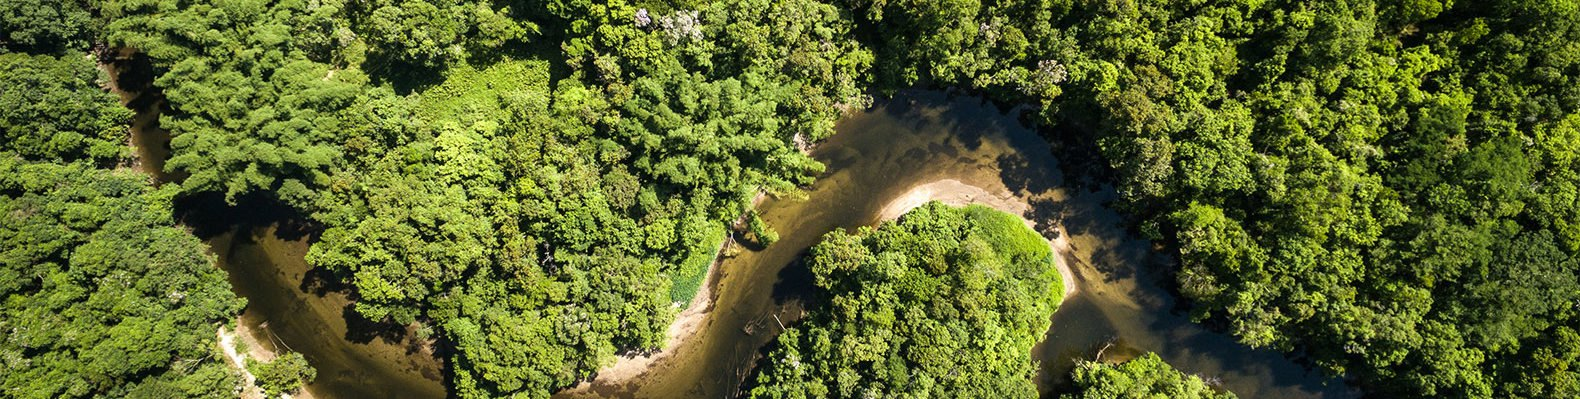 Amazon, Brazil, rainforest, forest, trees, nature, river